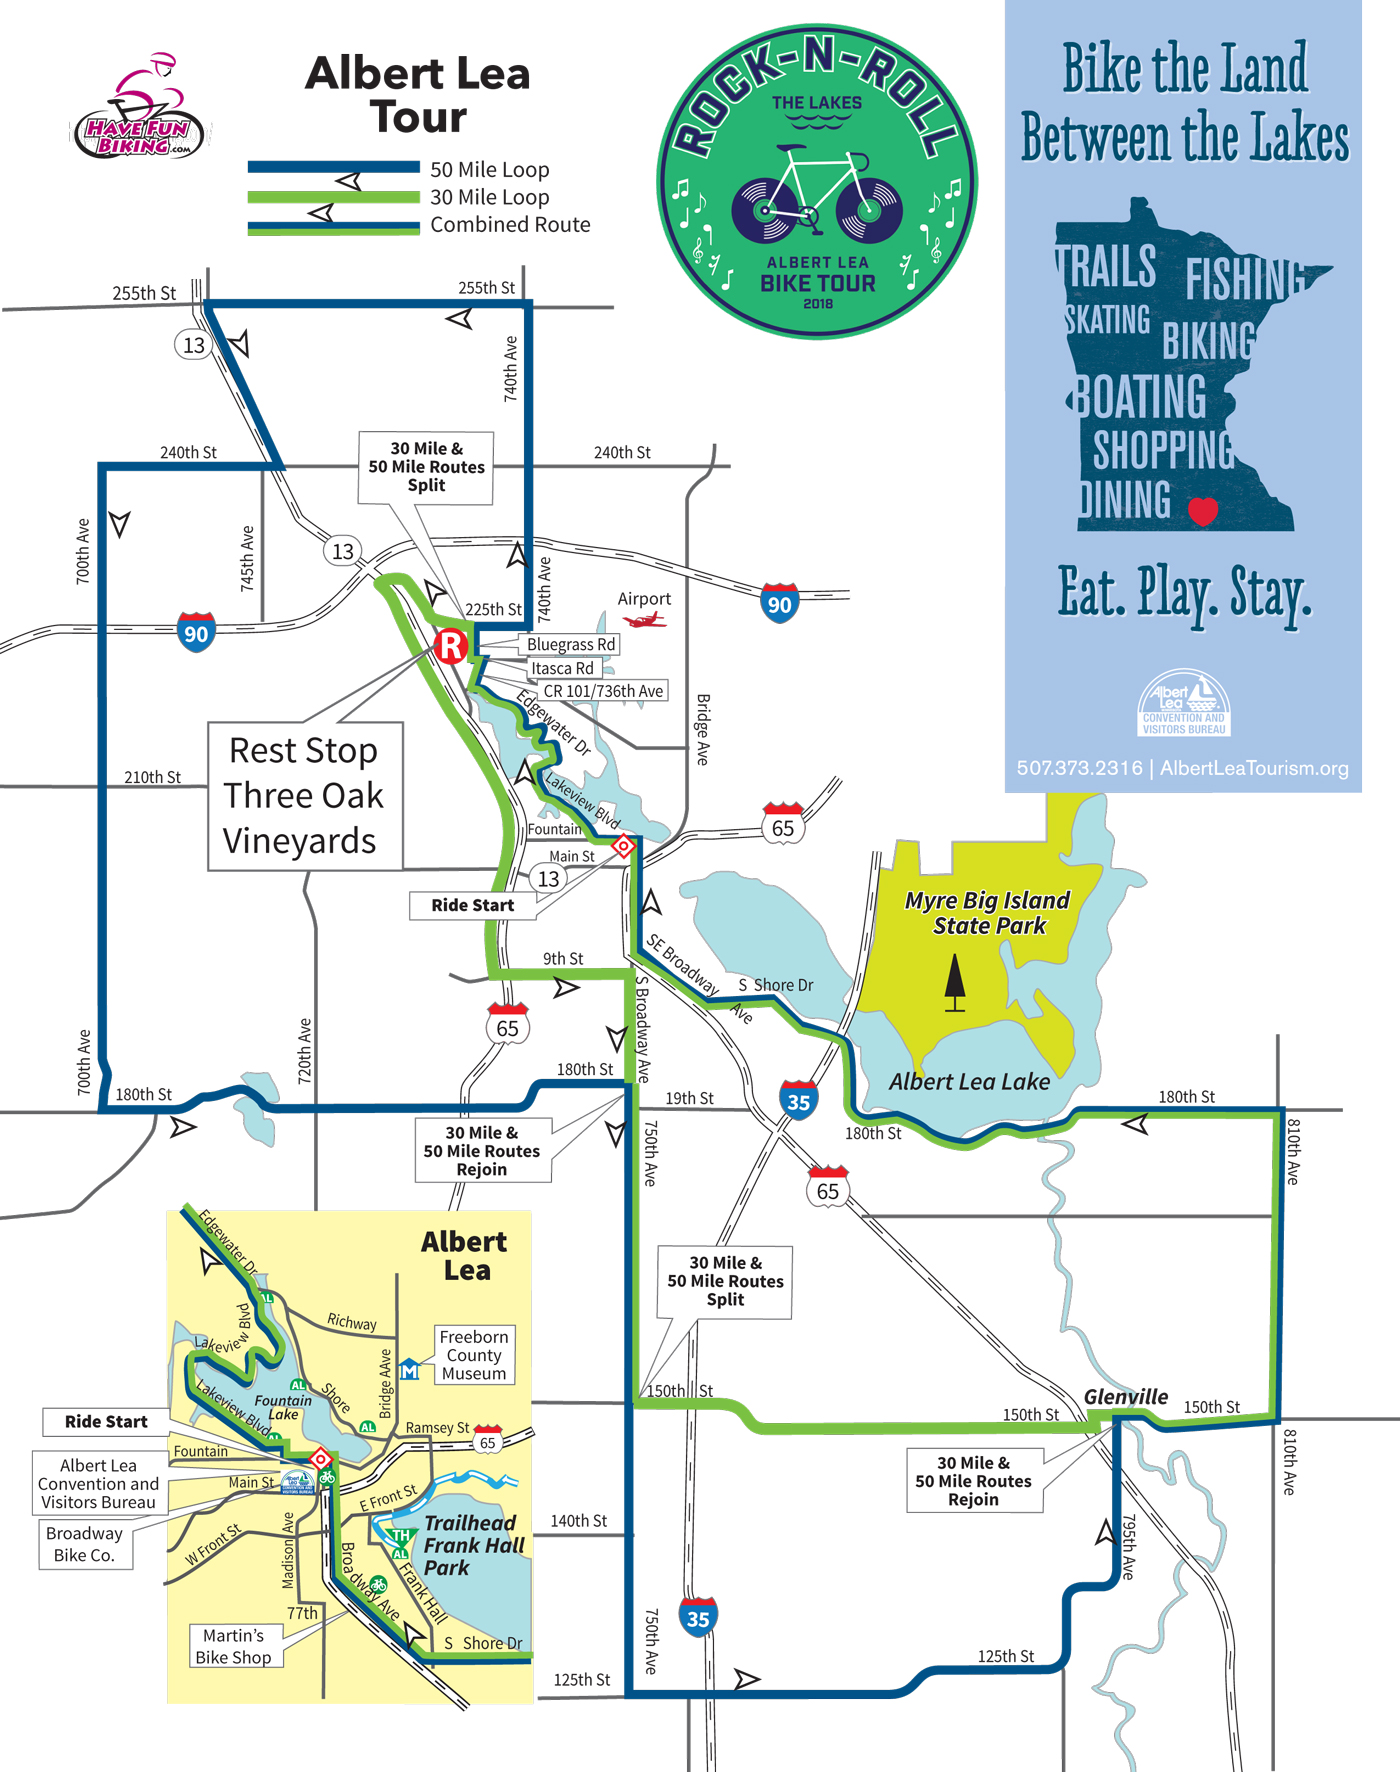 A map of the 30-mile and 50-mile routes for the Rock-n-Roll the Lakes bike ride